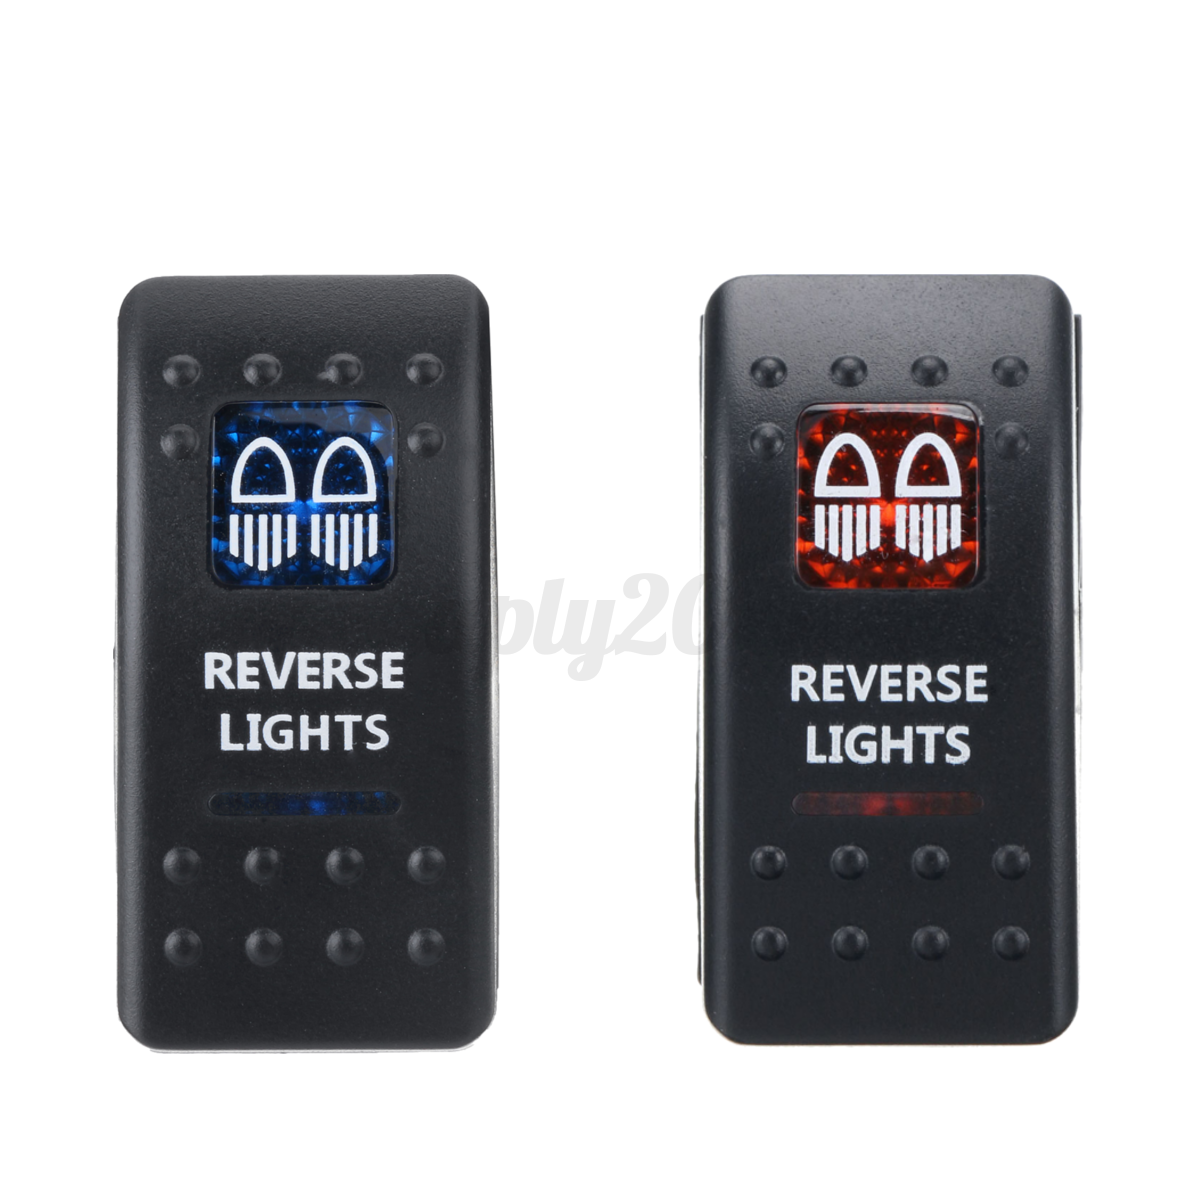 Coche-Interruptor-Basculante-LED-12V-24V-SPST-ON-OFF-Switch-Impermeable-Barco miniatura 24